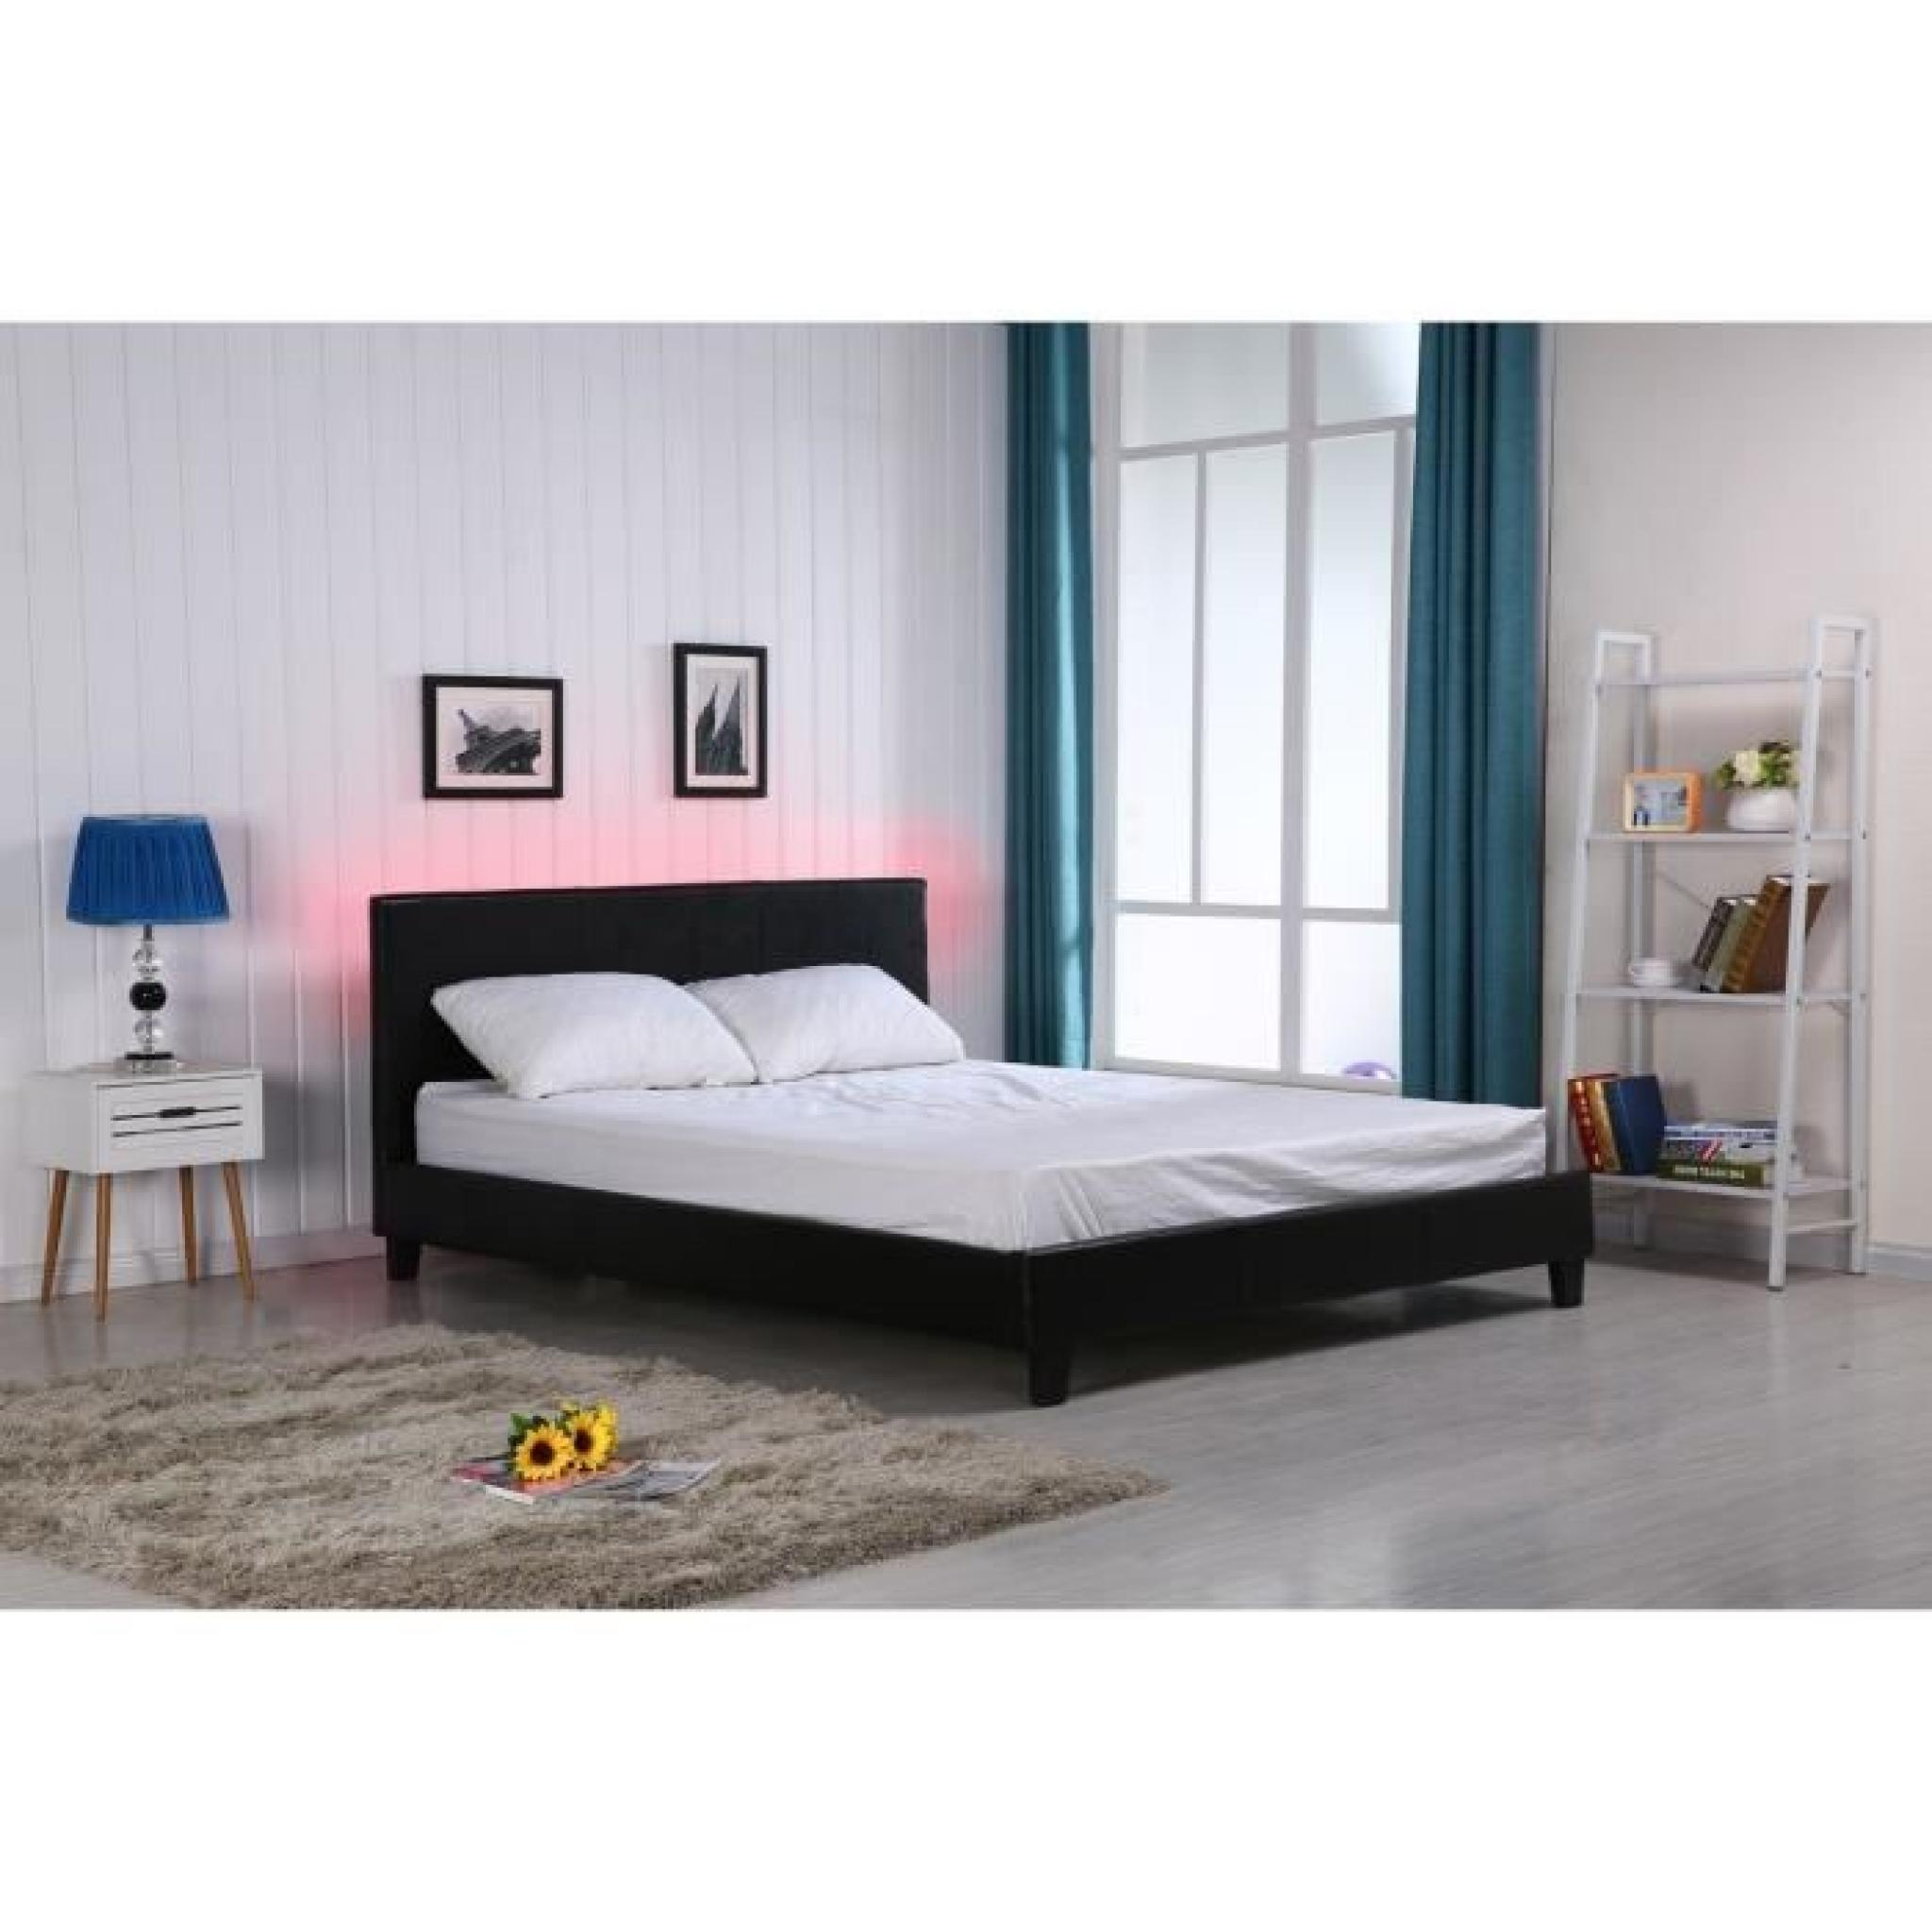 Vegas lit led adulte noir 160x200cm sommier t te de for Chambre complete adulte led